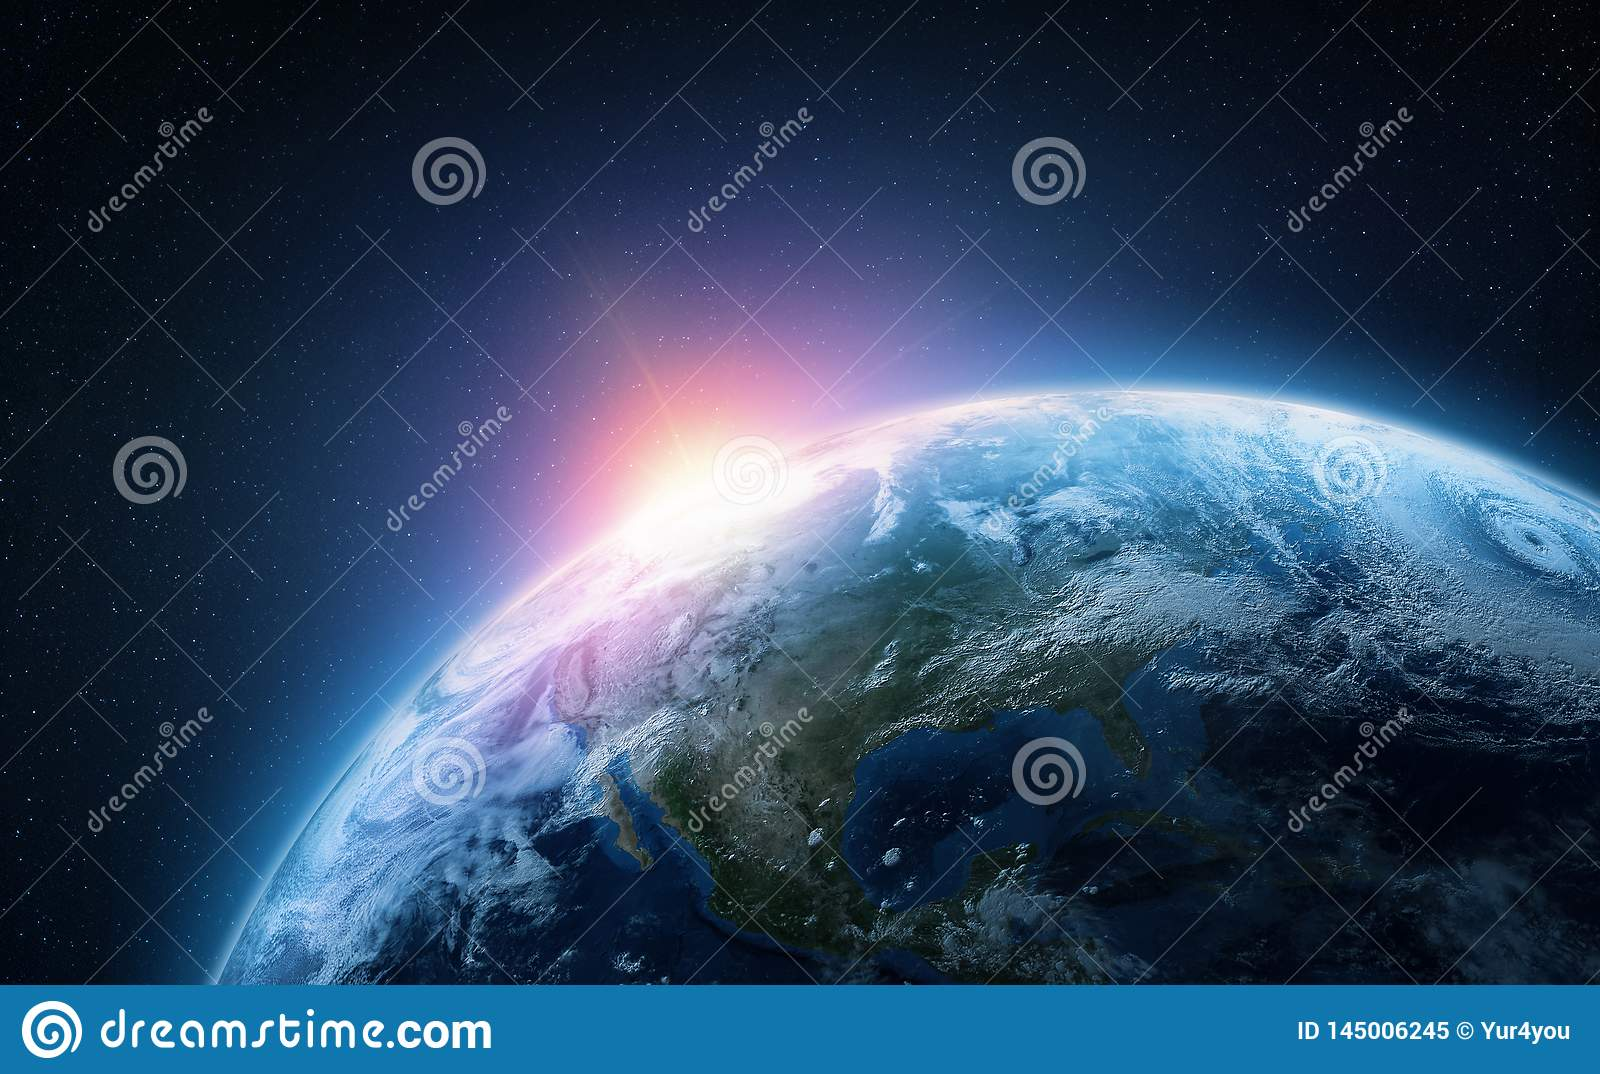 Planet Earth. View from space orbit. Photorealistic illustration